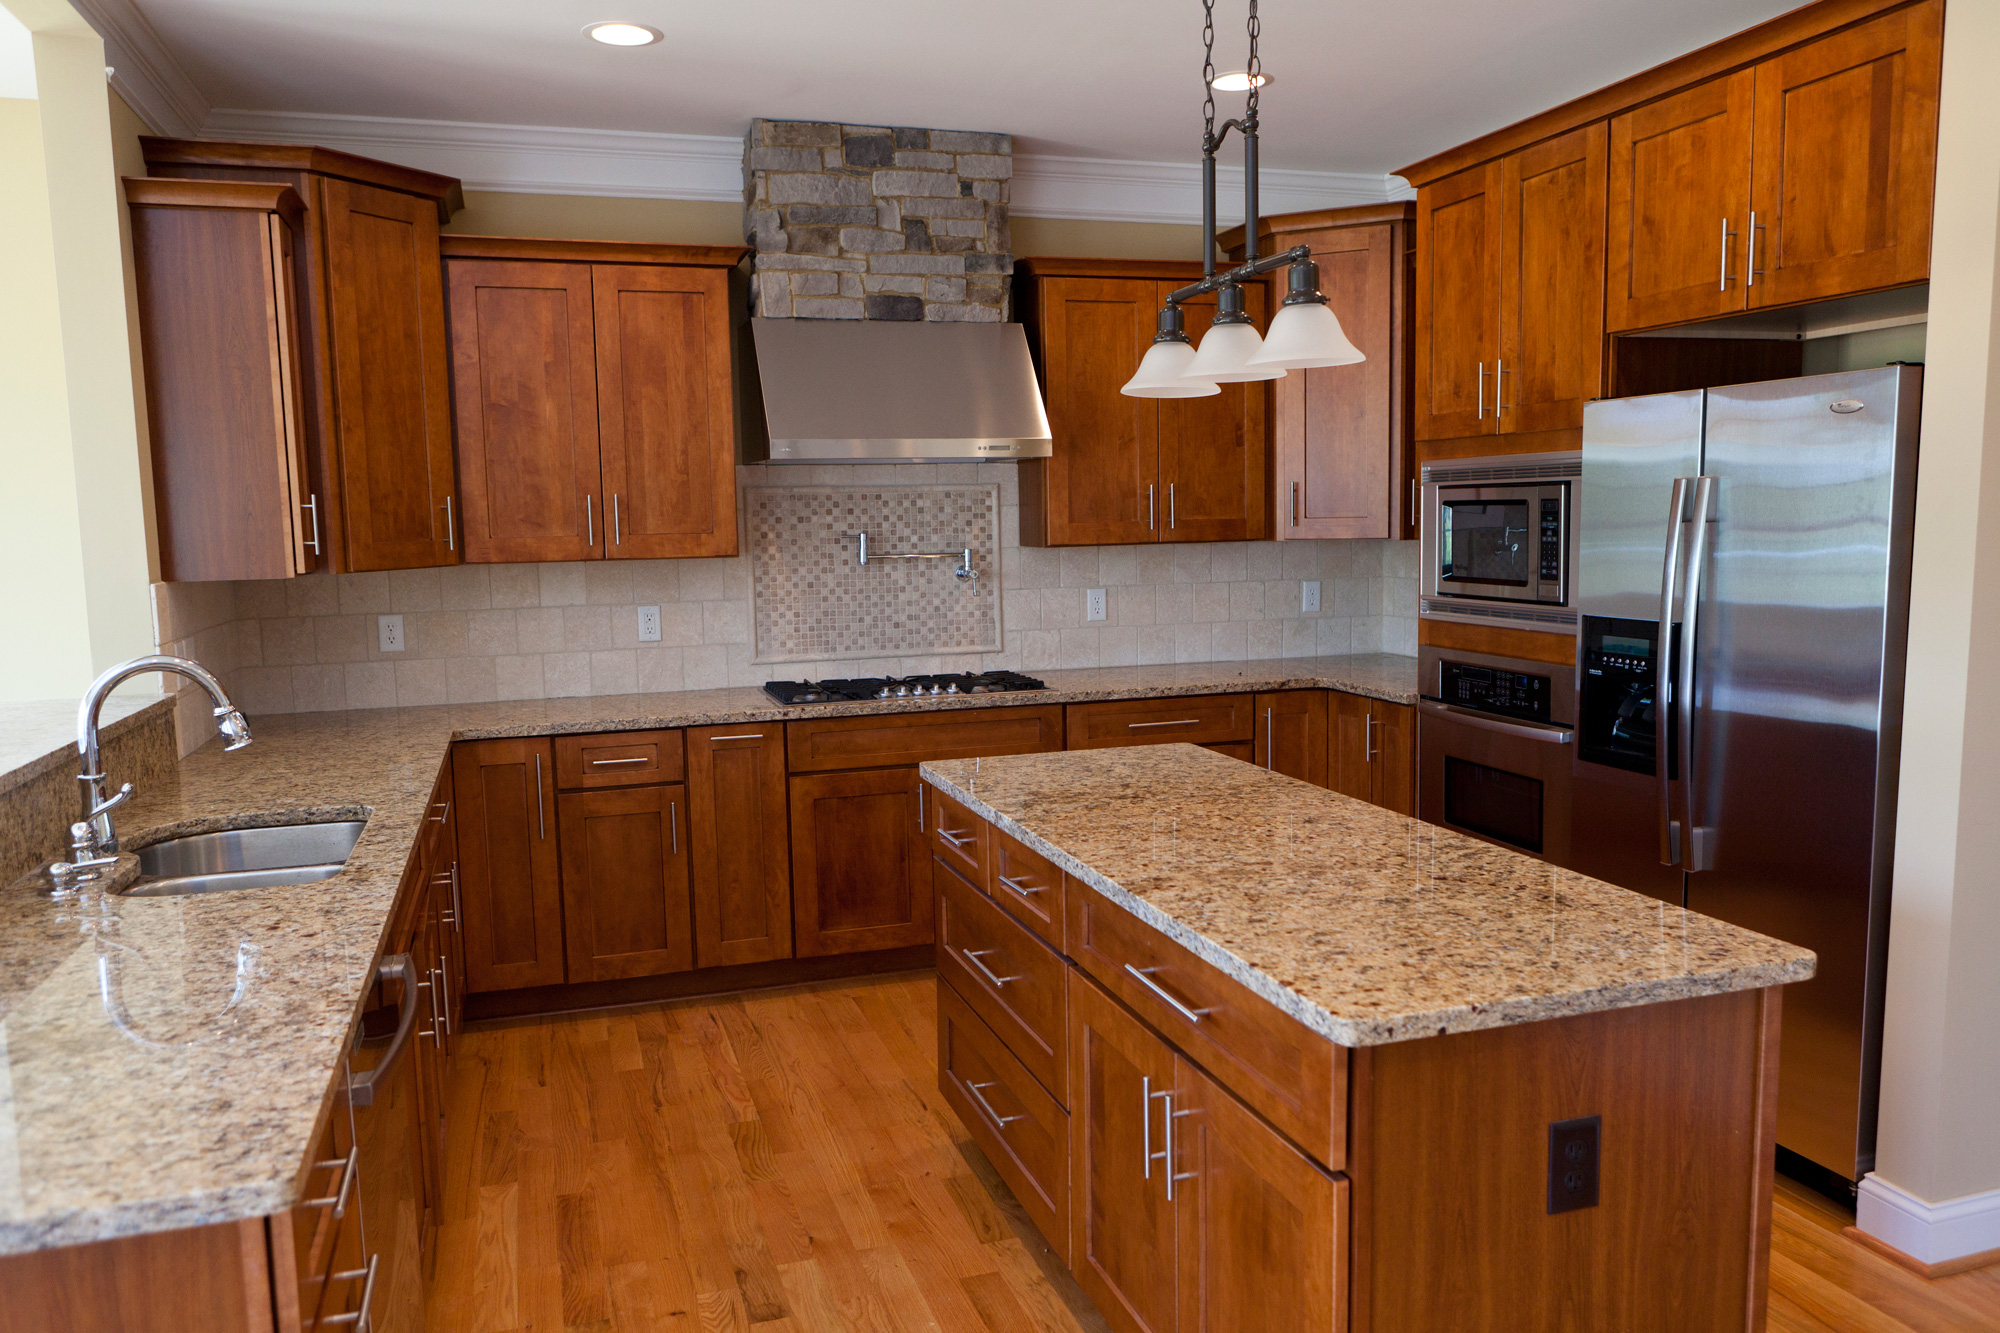 East palo alto contractor and home remodel company for Photos of remodeled kitchens